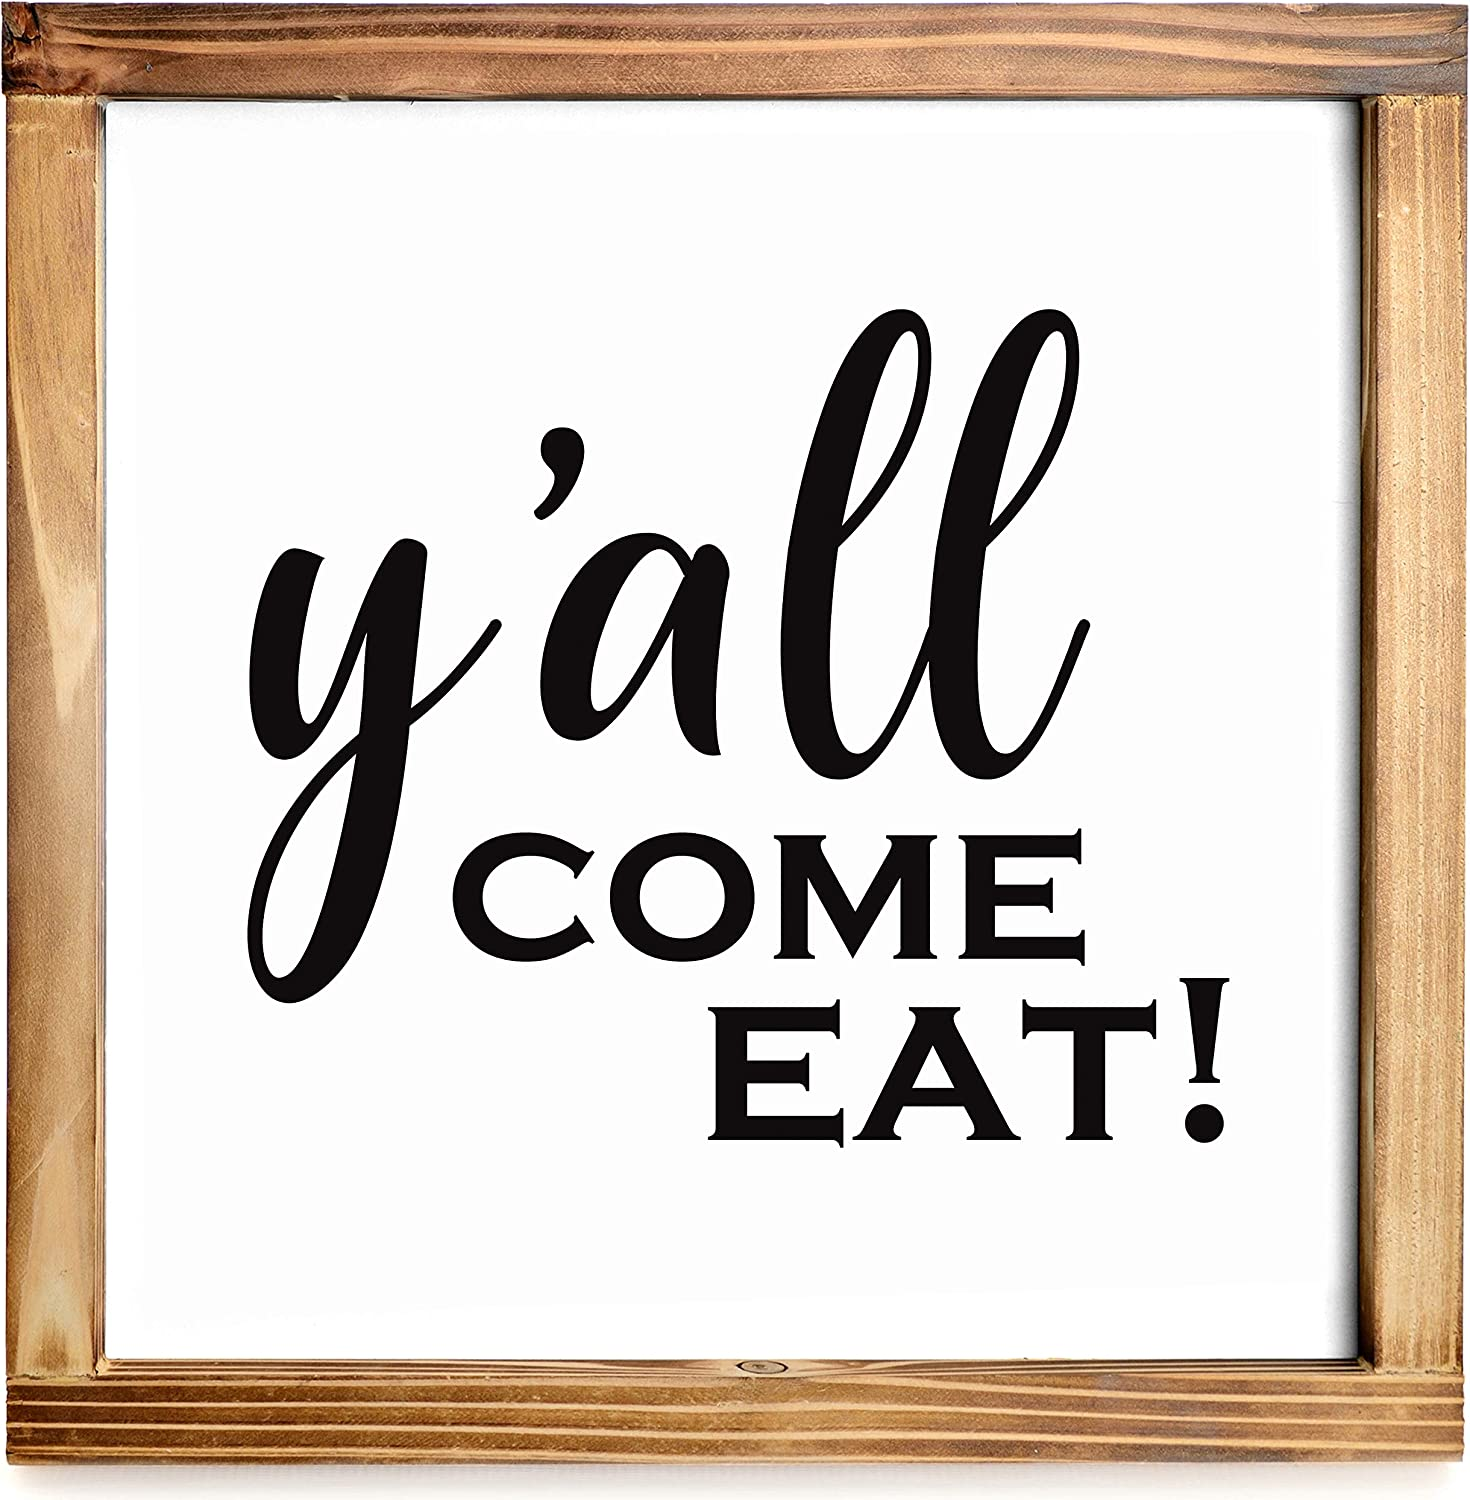 Y'all Come Eat Sign-Southern Kitchen Sign - Modern Farmhouse Kitchen Decor- Kitchen Wall Decor- Eat Sign for Kitchen - Country Kitchen Decor, Farmhouse Decor Sign with Solid Wood Frame 12x12 Inch